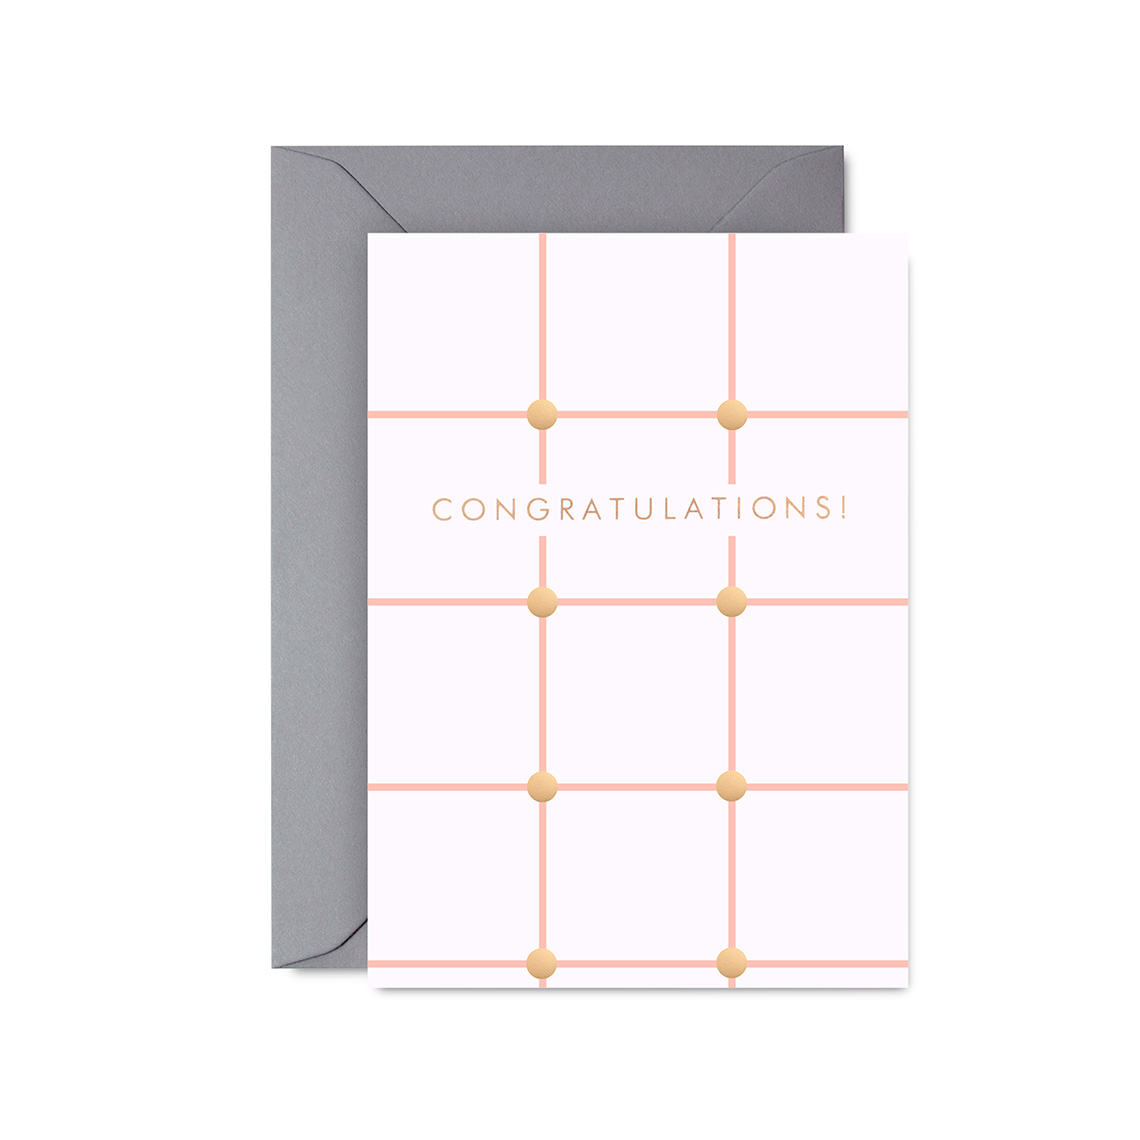 Congratulations by Studio Sarah